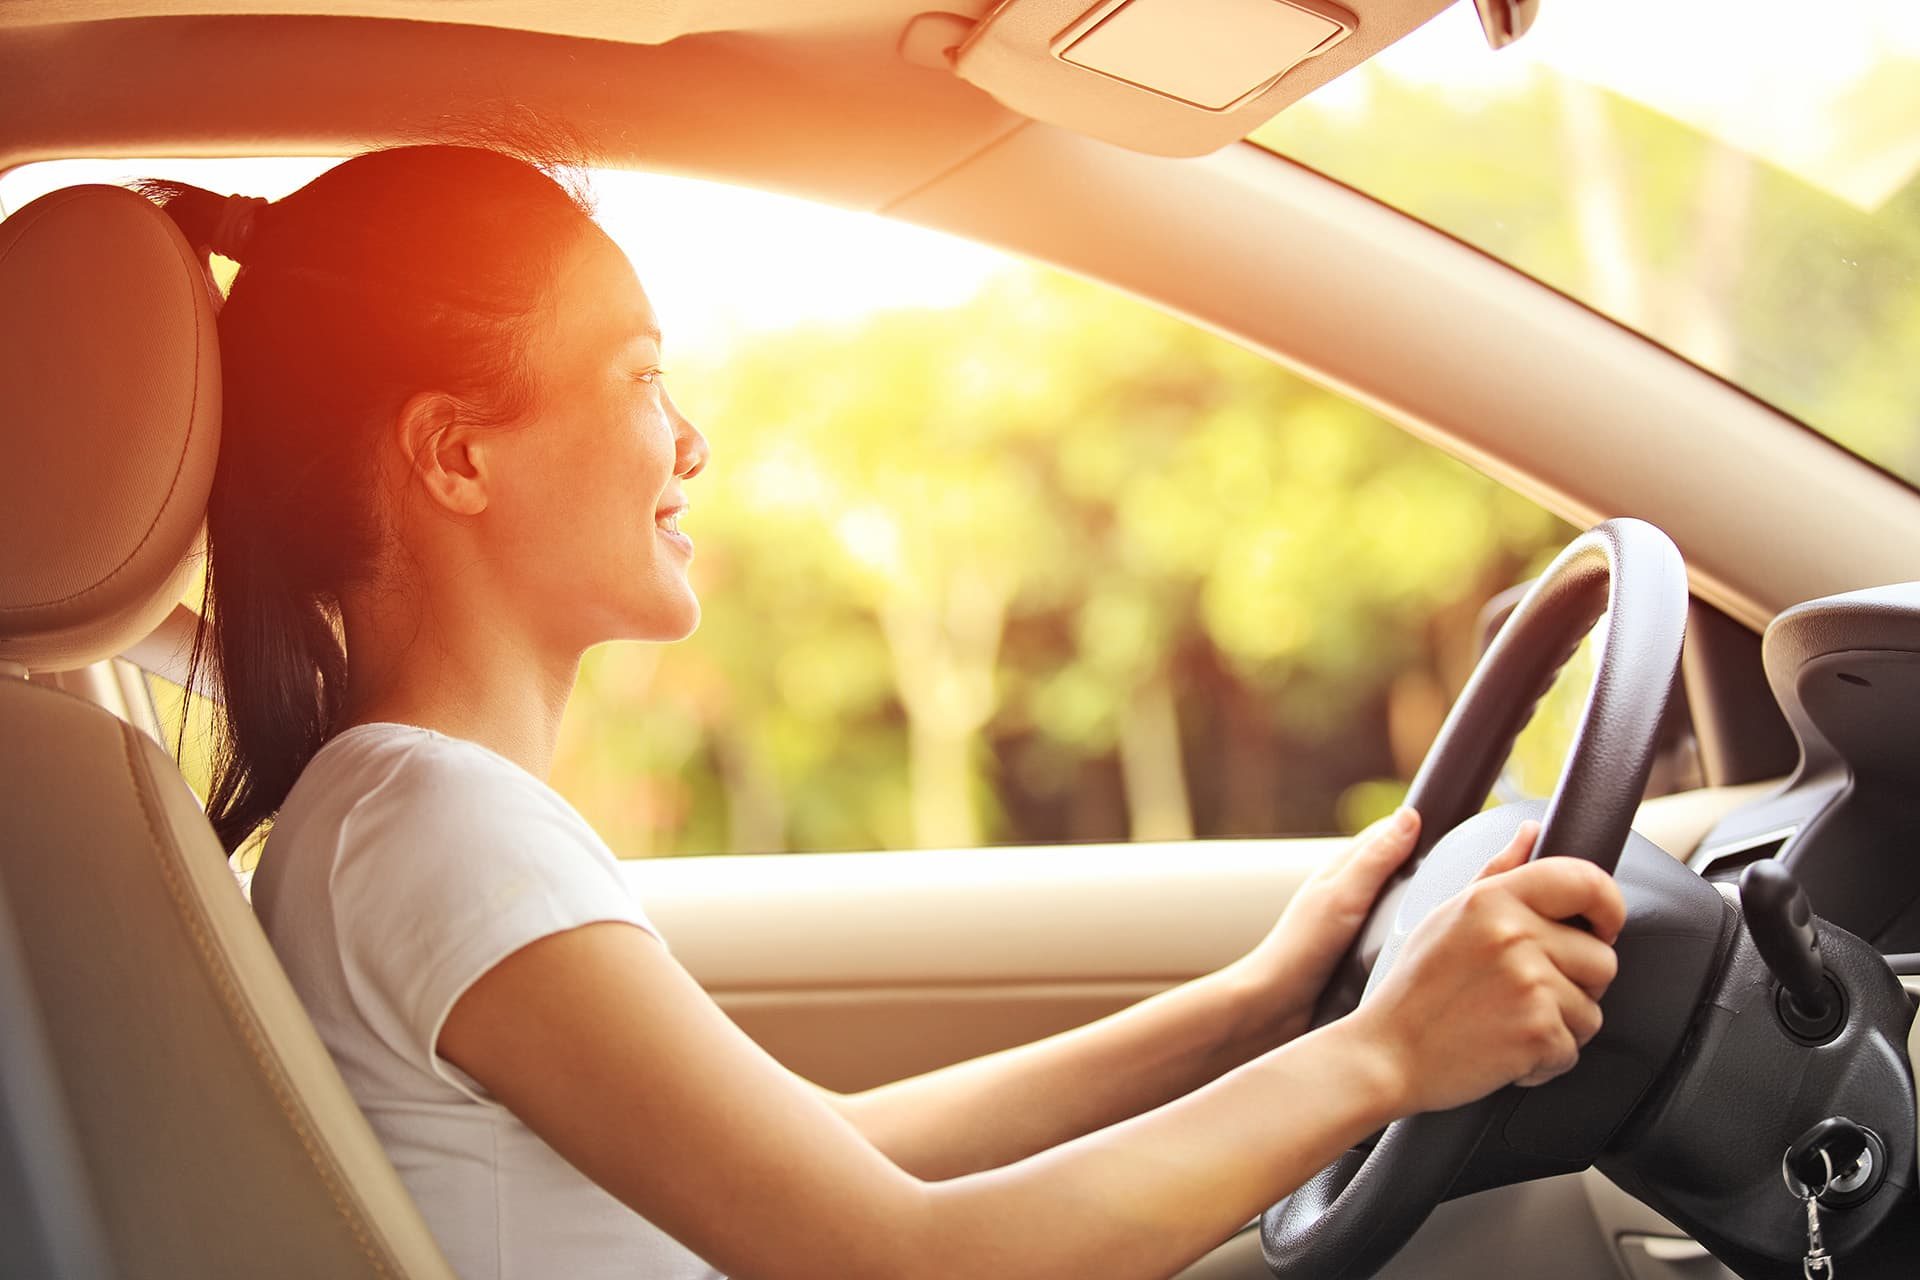 Young woman with new driver insurance driving a car with leather interior